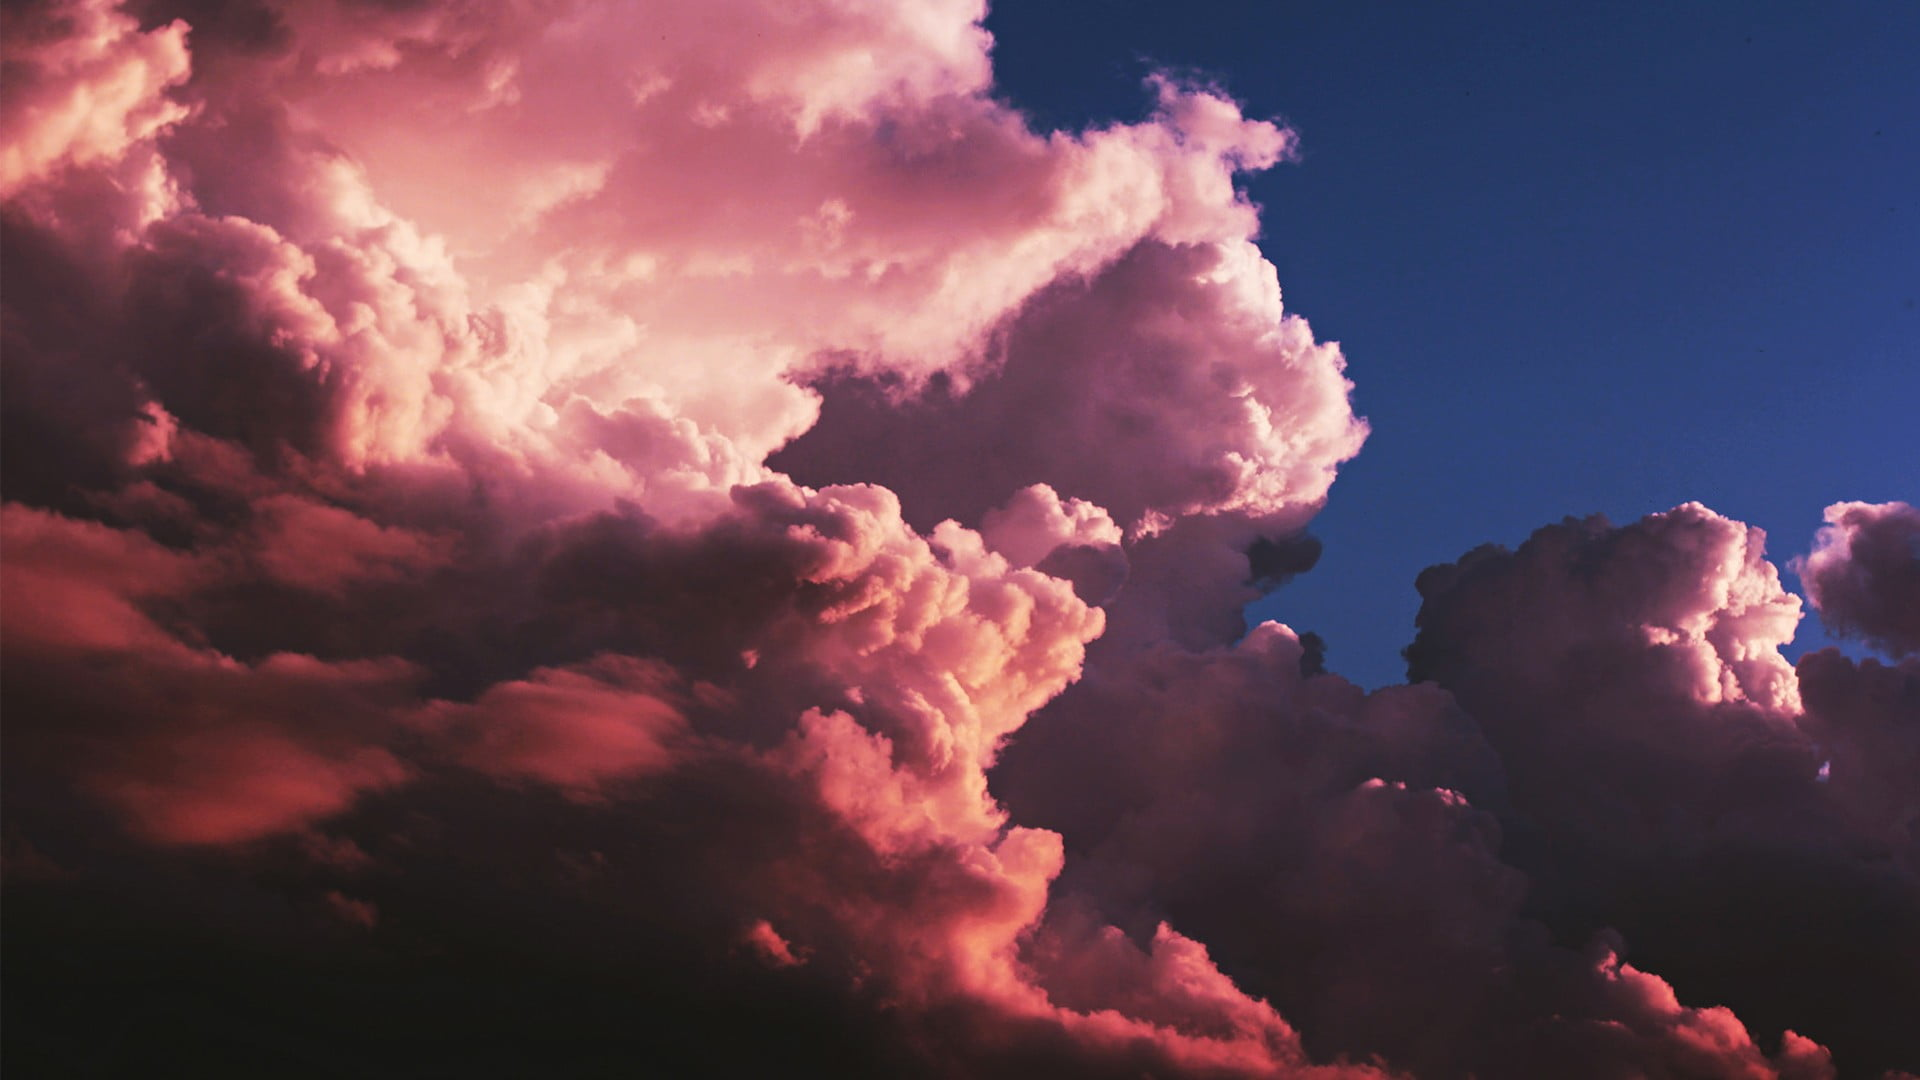 Pink clouds clouds HD wallpaper Wallpaper Flare